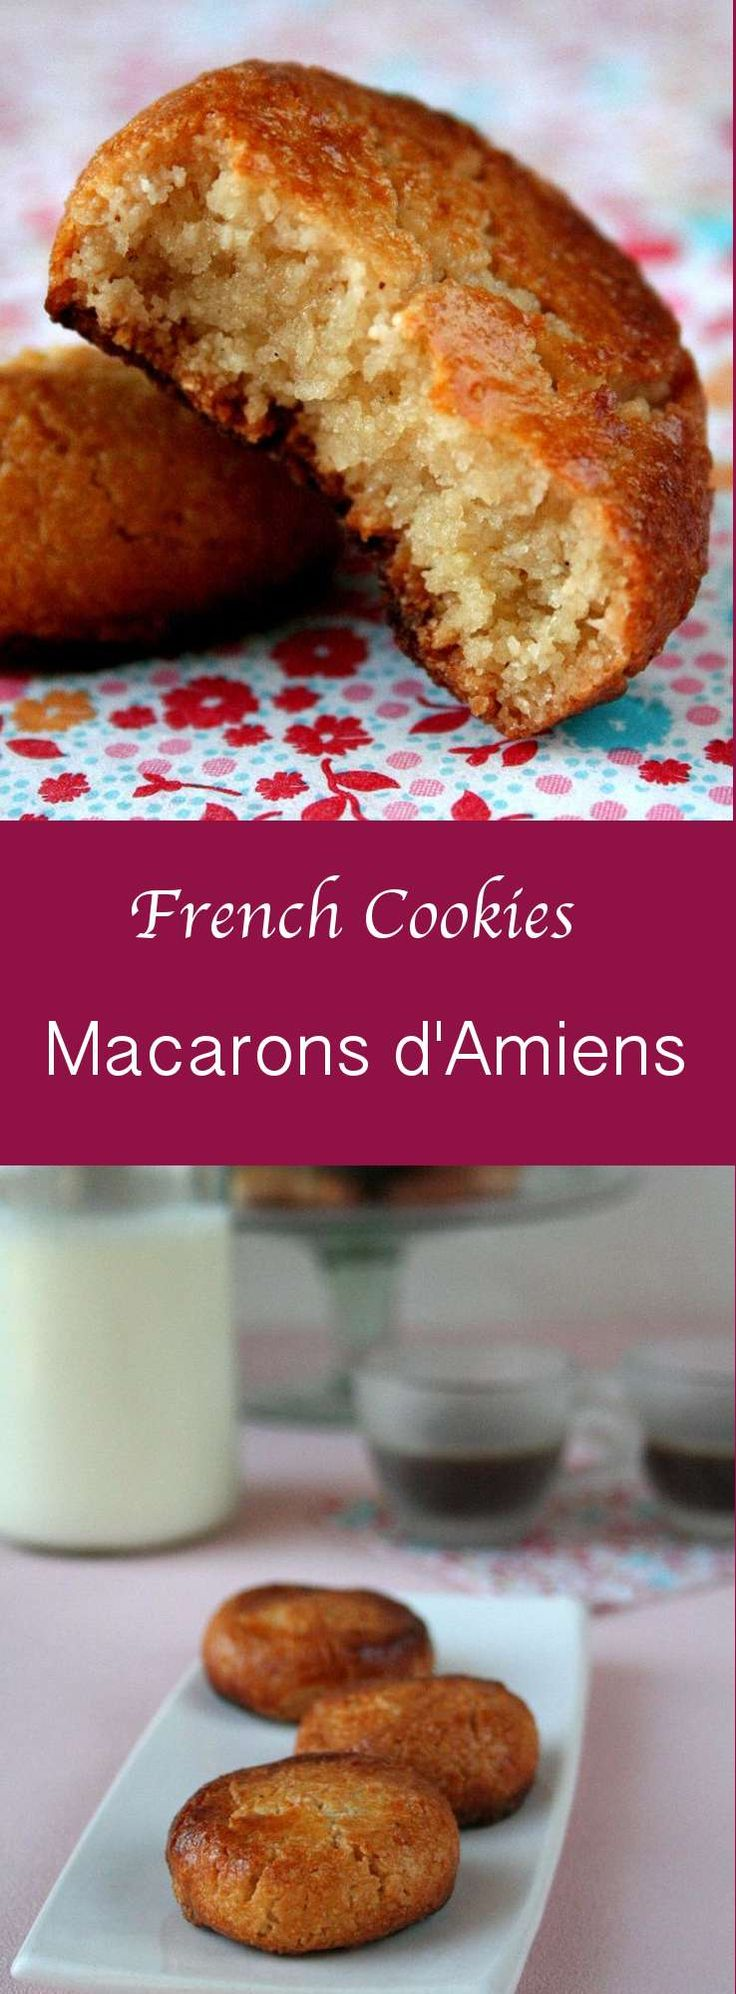 Amiens macarons, unlike the smooth and colorful traditional Parisian macarons are not made of meringue and almonds. The recipe is much easier. #196flavos